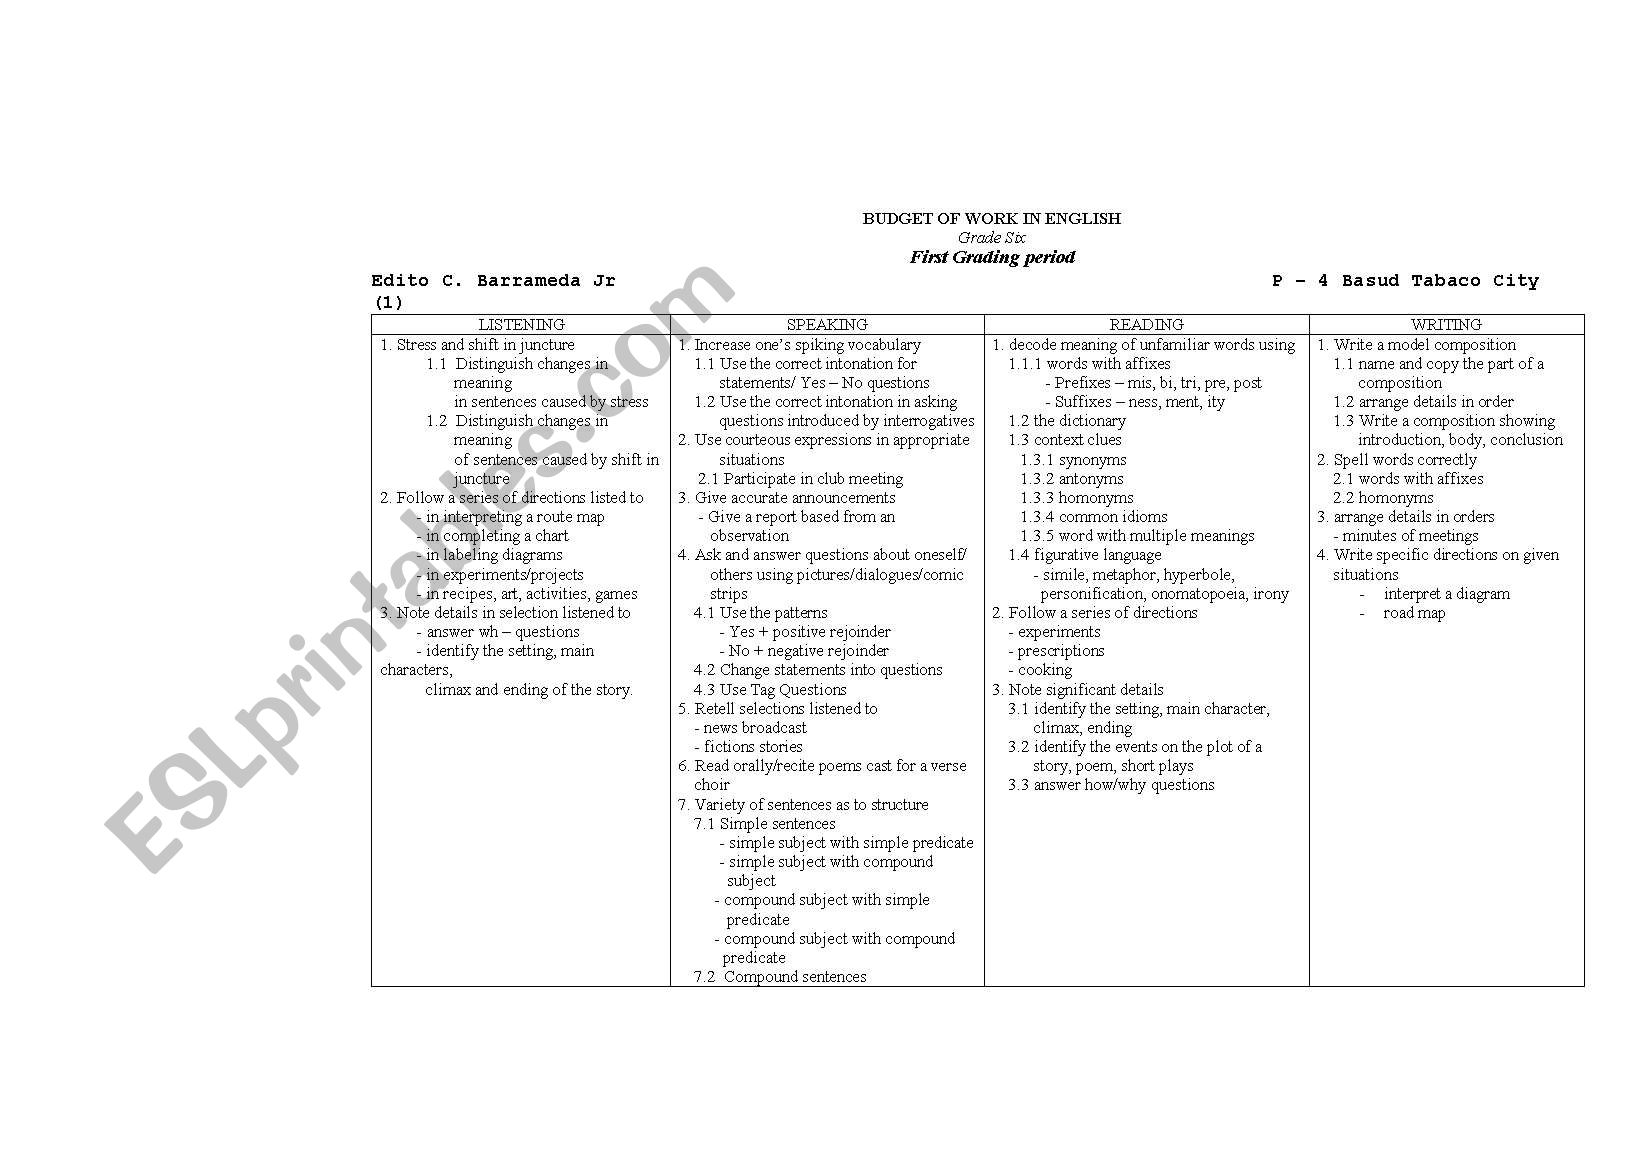 English Worksheets Budget Of Work In English